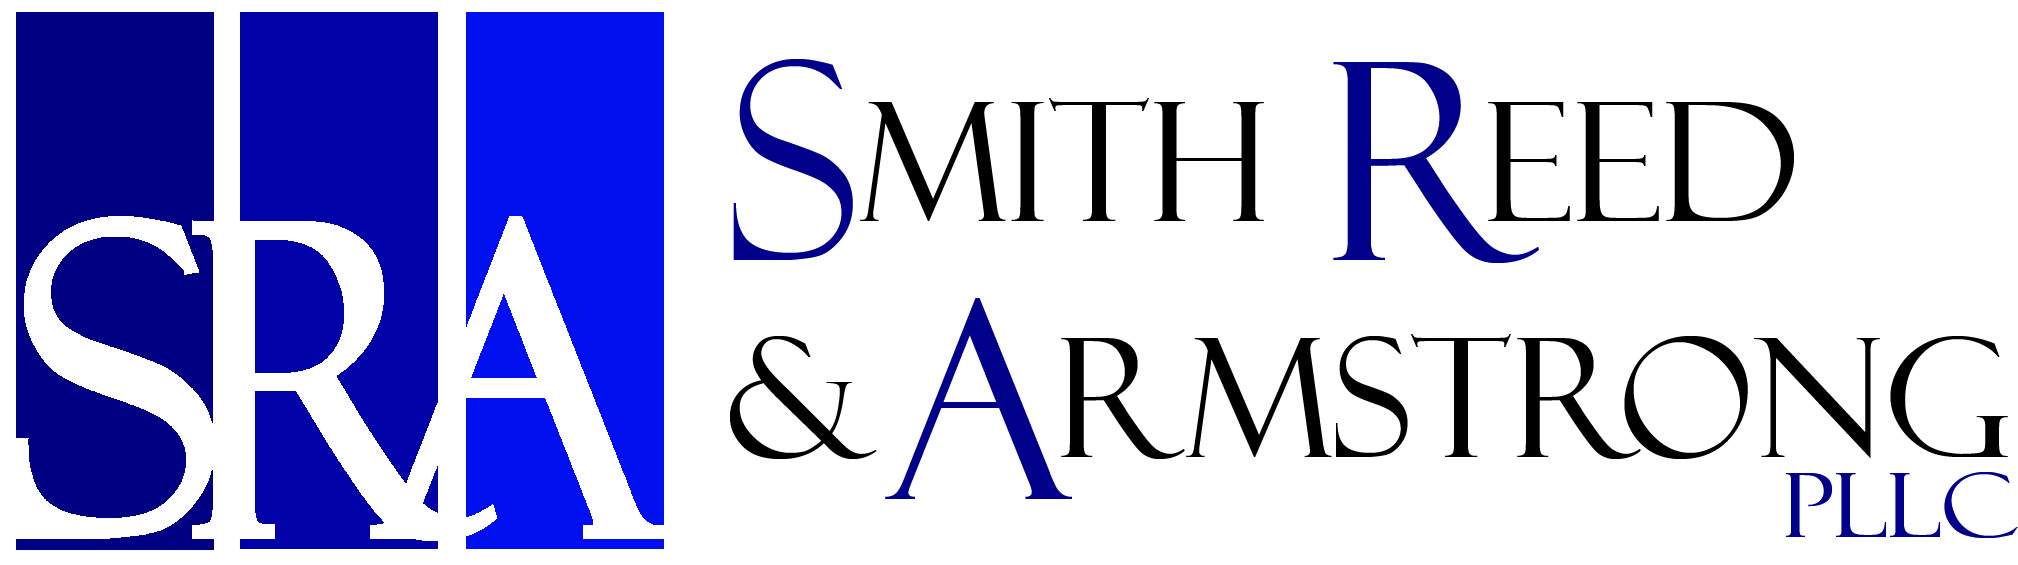 Smith Reed & Armstrong, PLLC